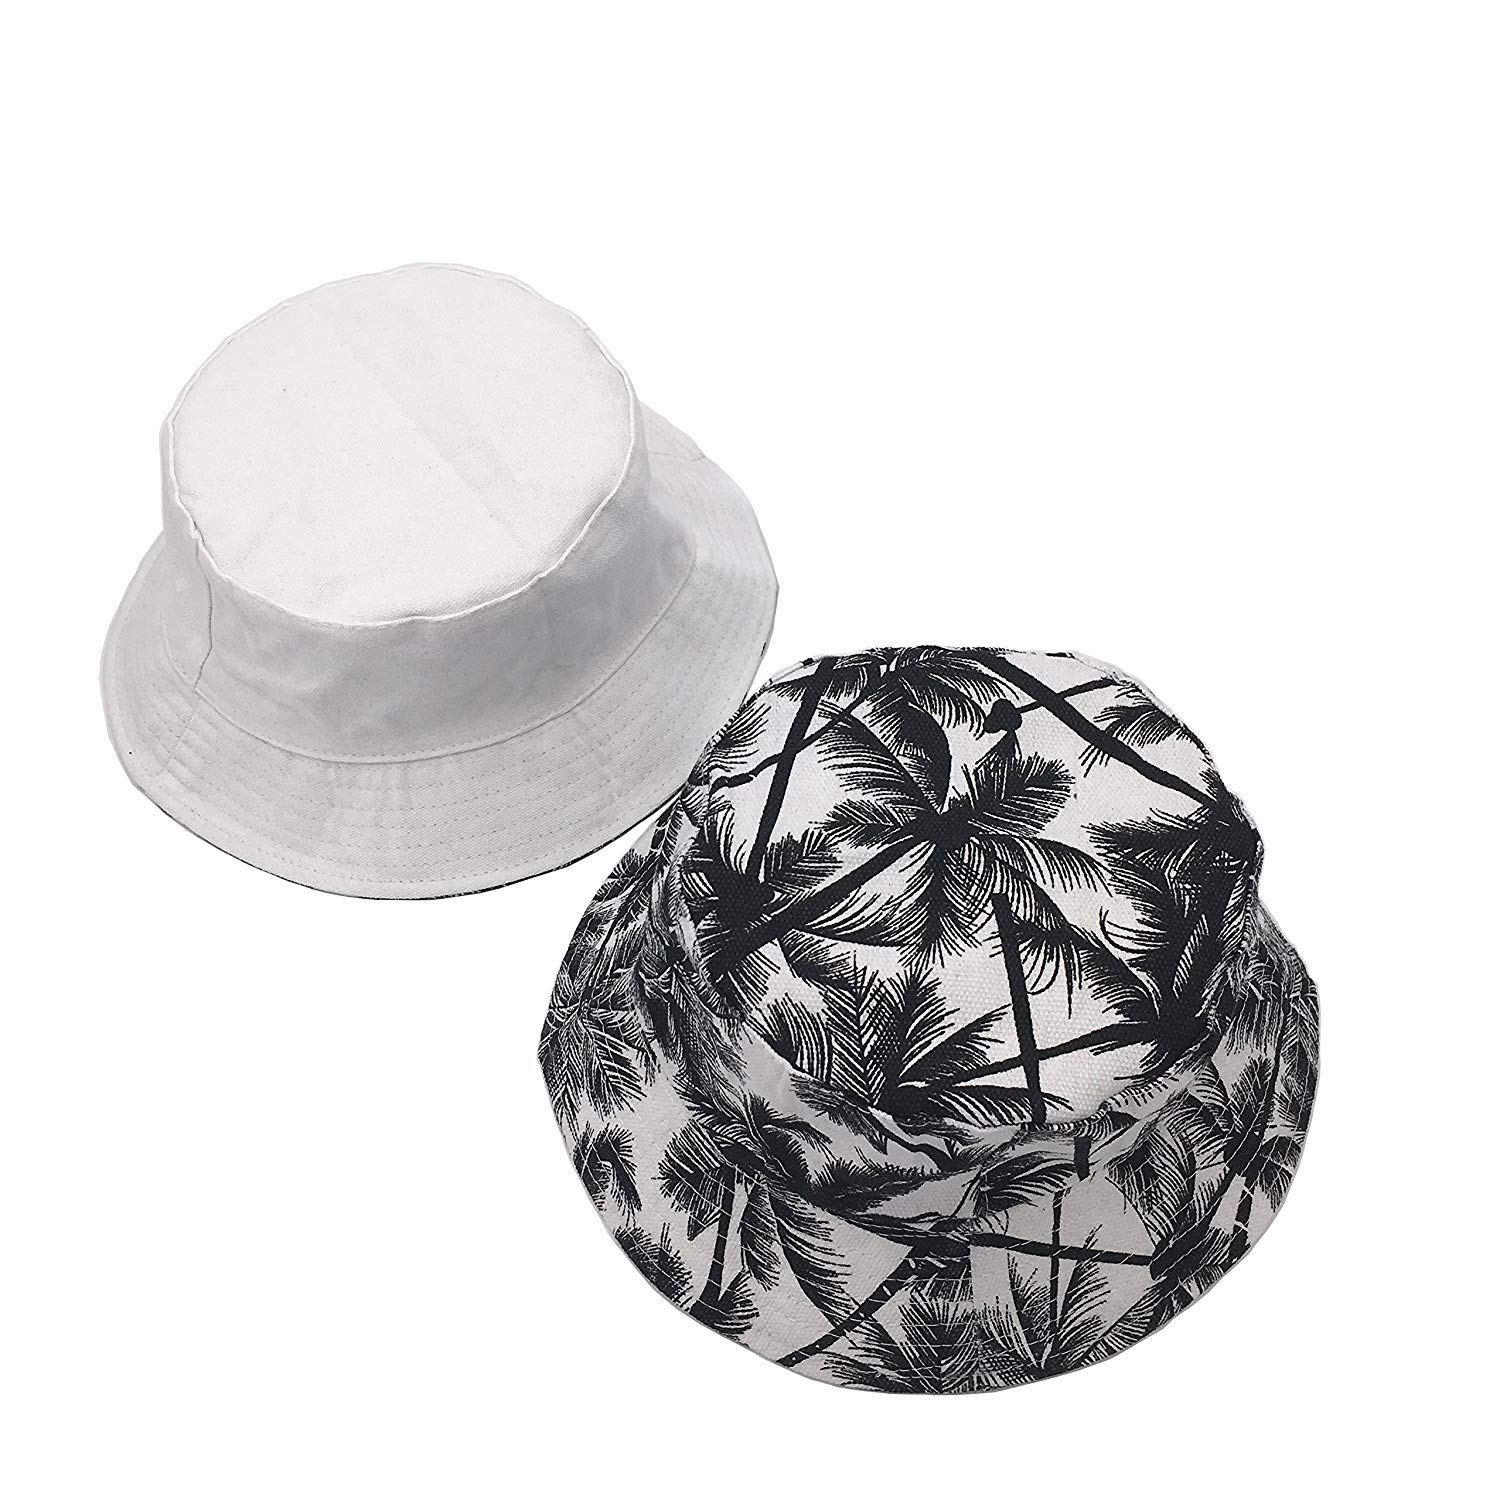 LWBTOSEE Bucket Hats for Men Dual-use Flat Top Bucket Hat Fisherman Hat with Coconut White